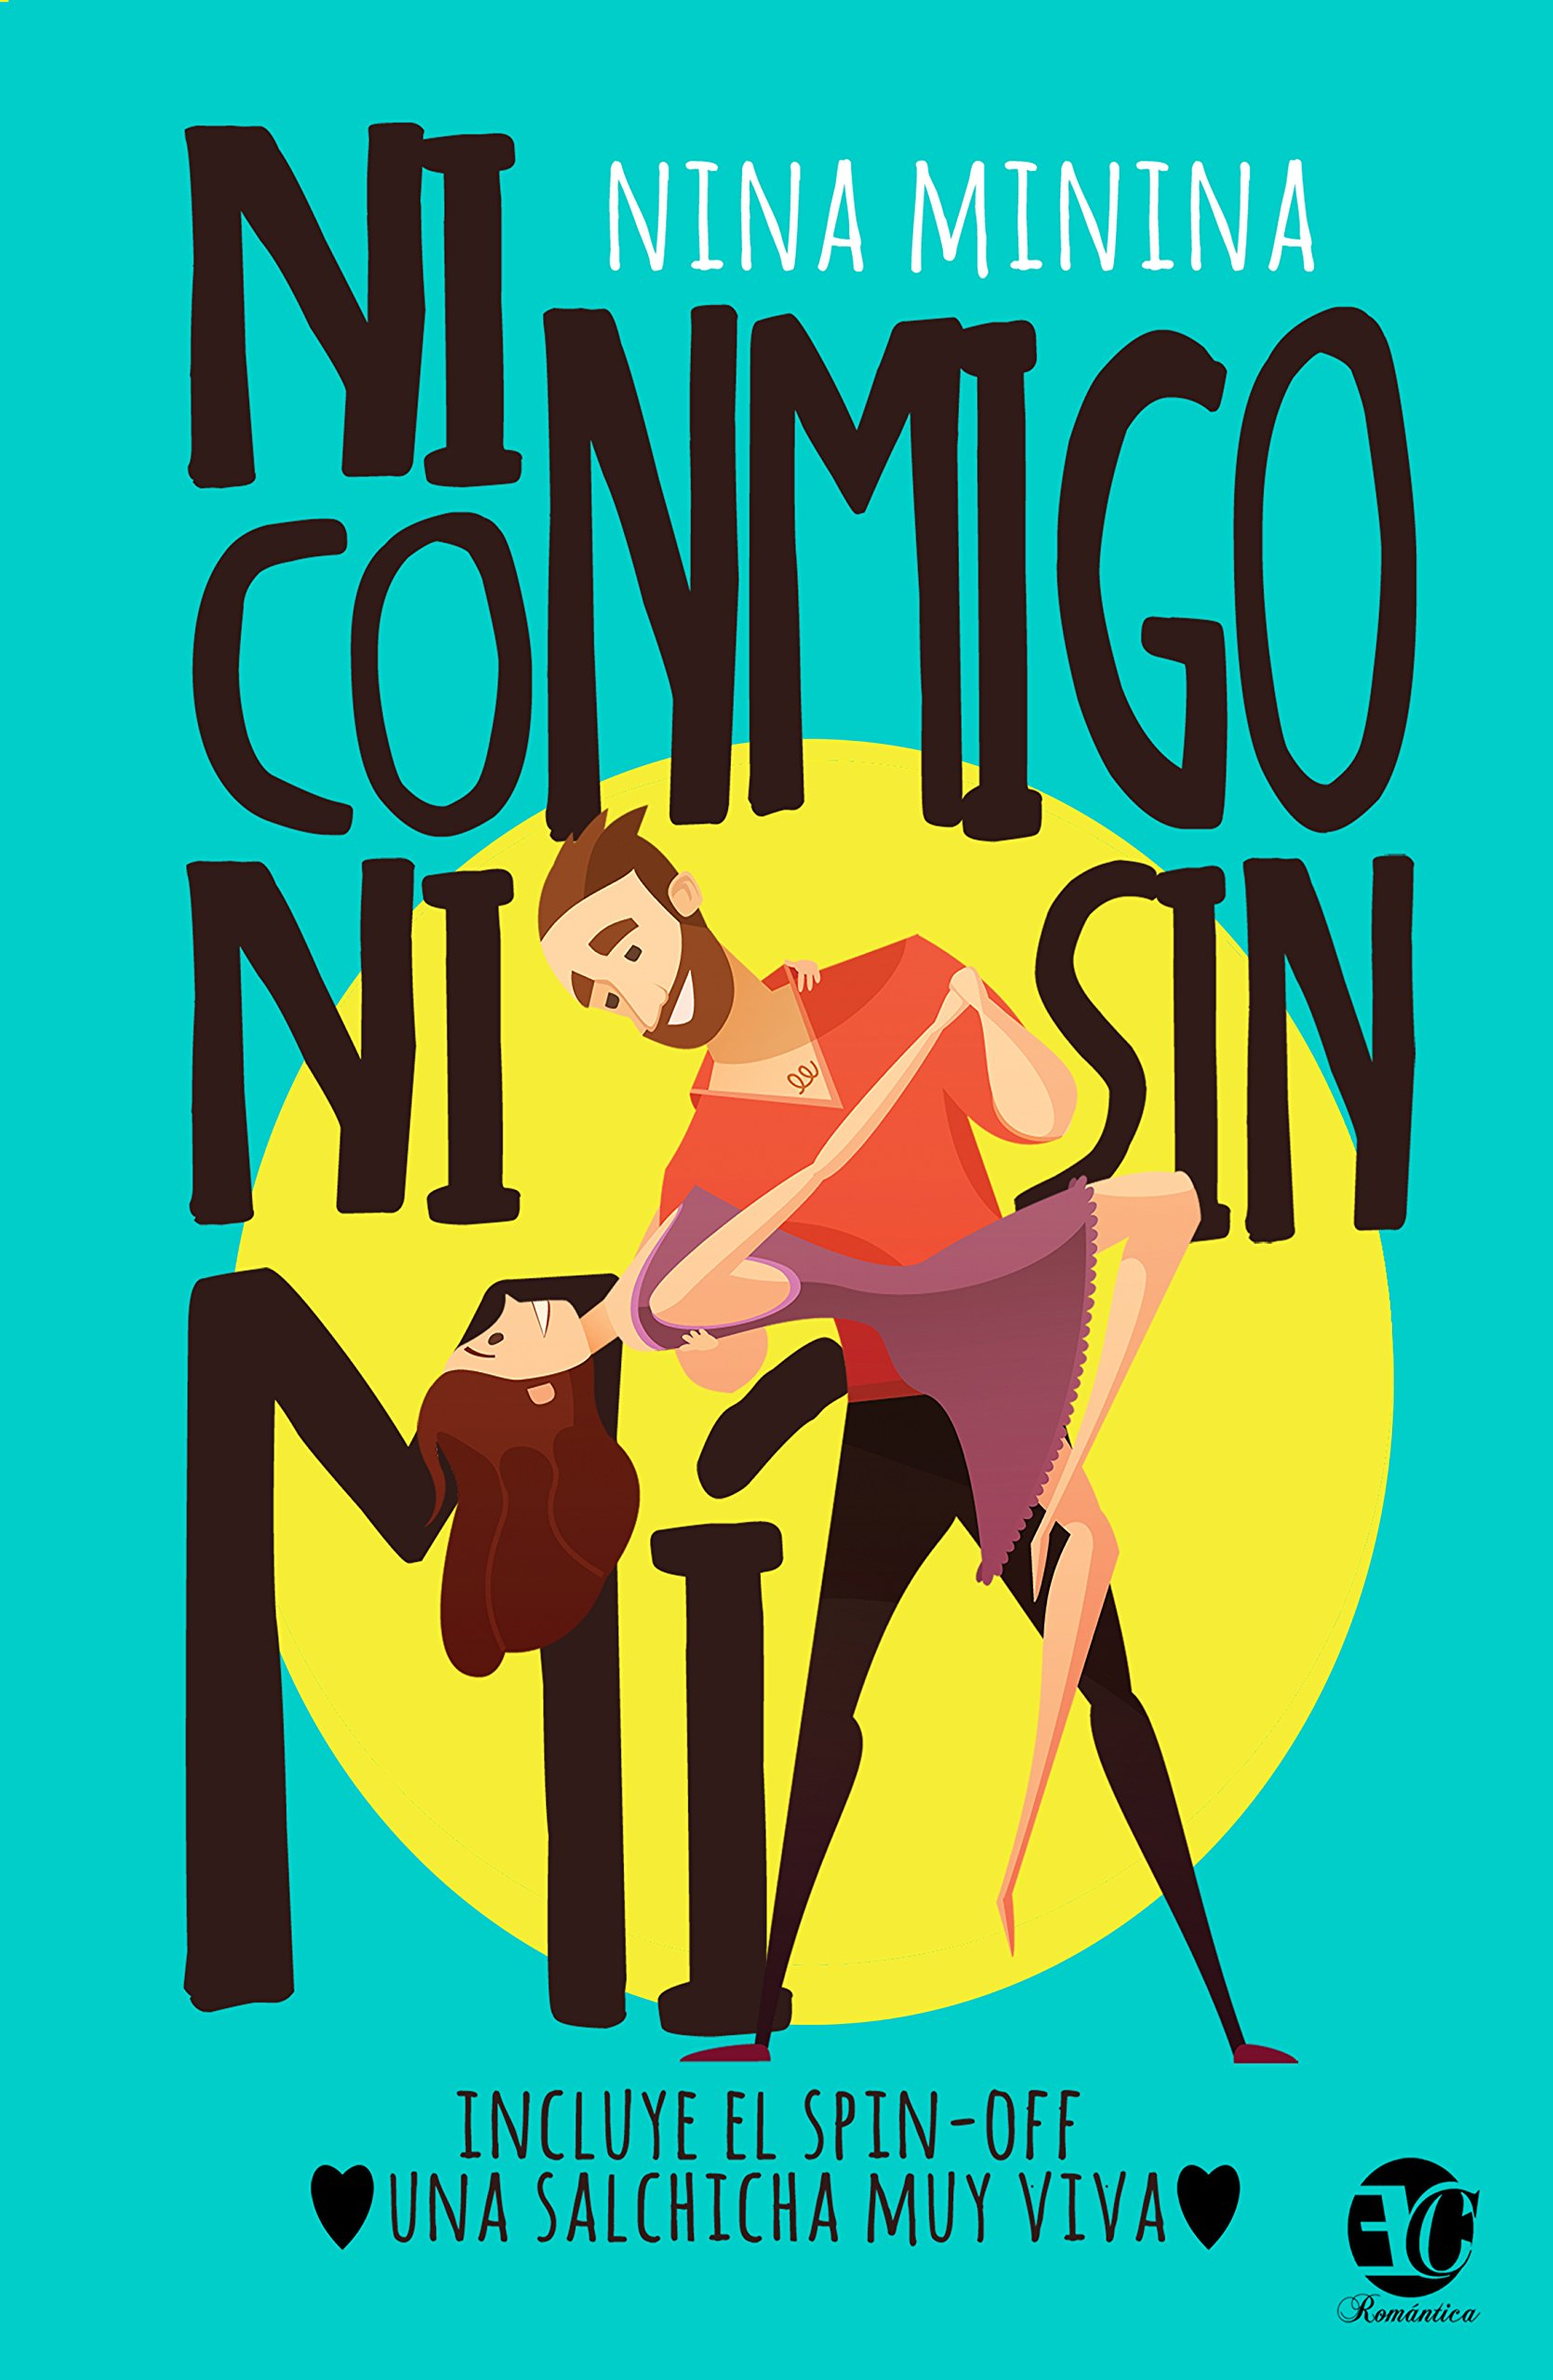 NI CONMIGO NI SIN MÍ: UNA SALCHICHA MUY VIVA: Amazon.es: NINA MININA, GROUP EDITION WORLD: Libros